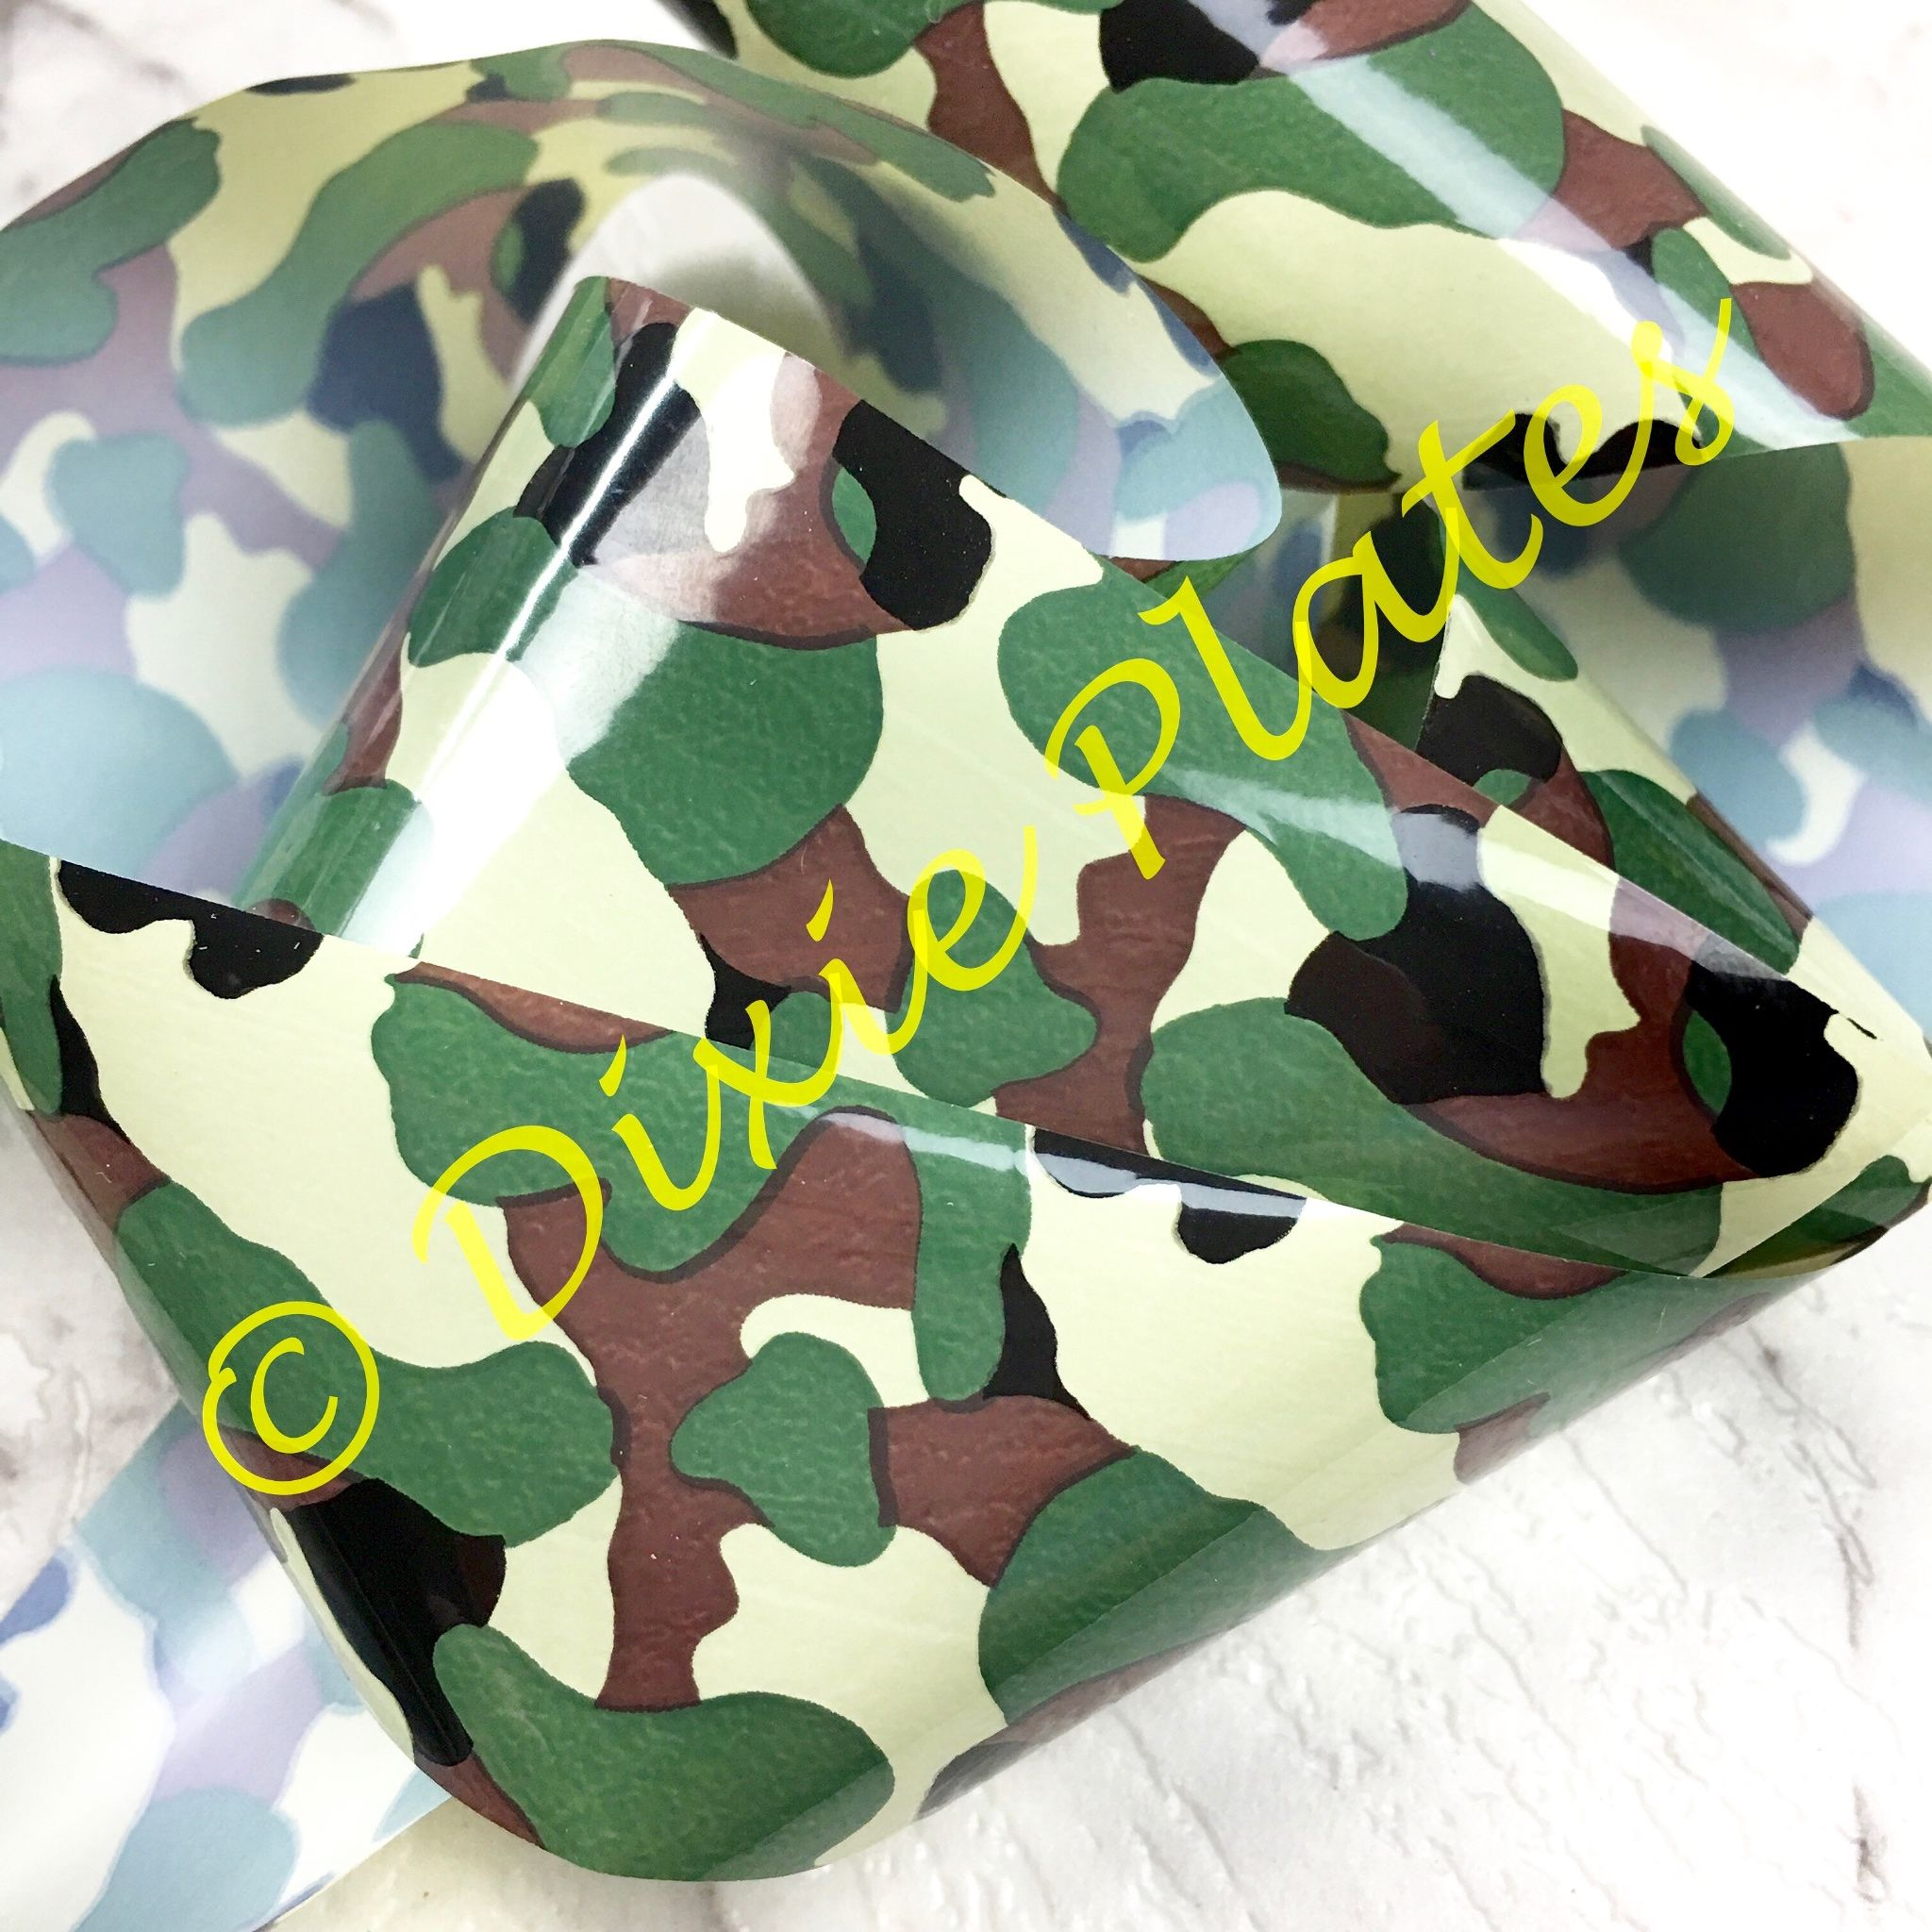 Camouflage Nail Art Foil 1 Meter